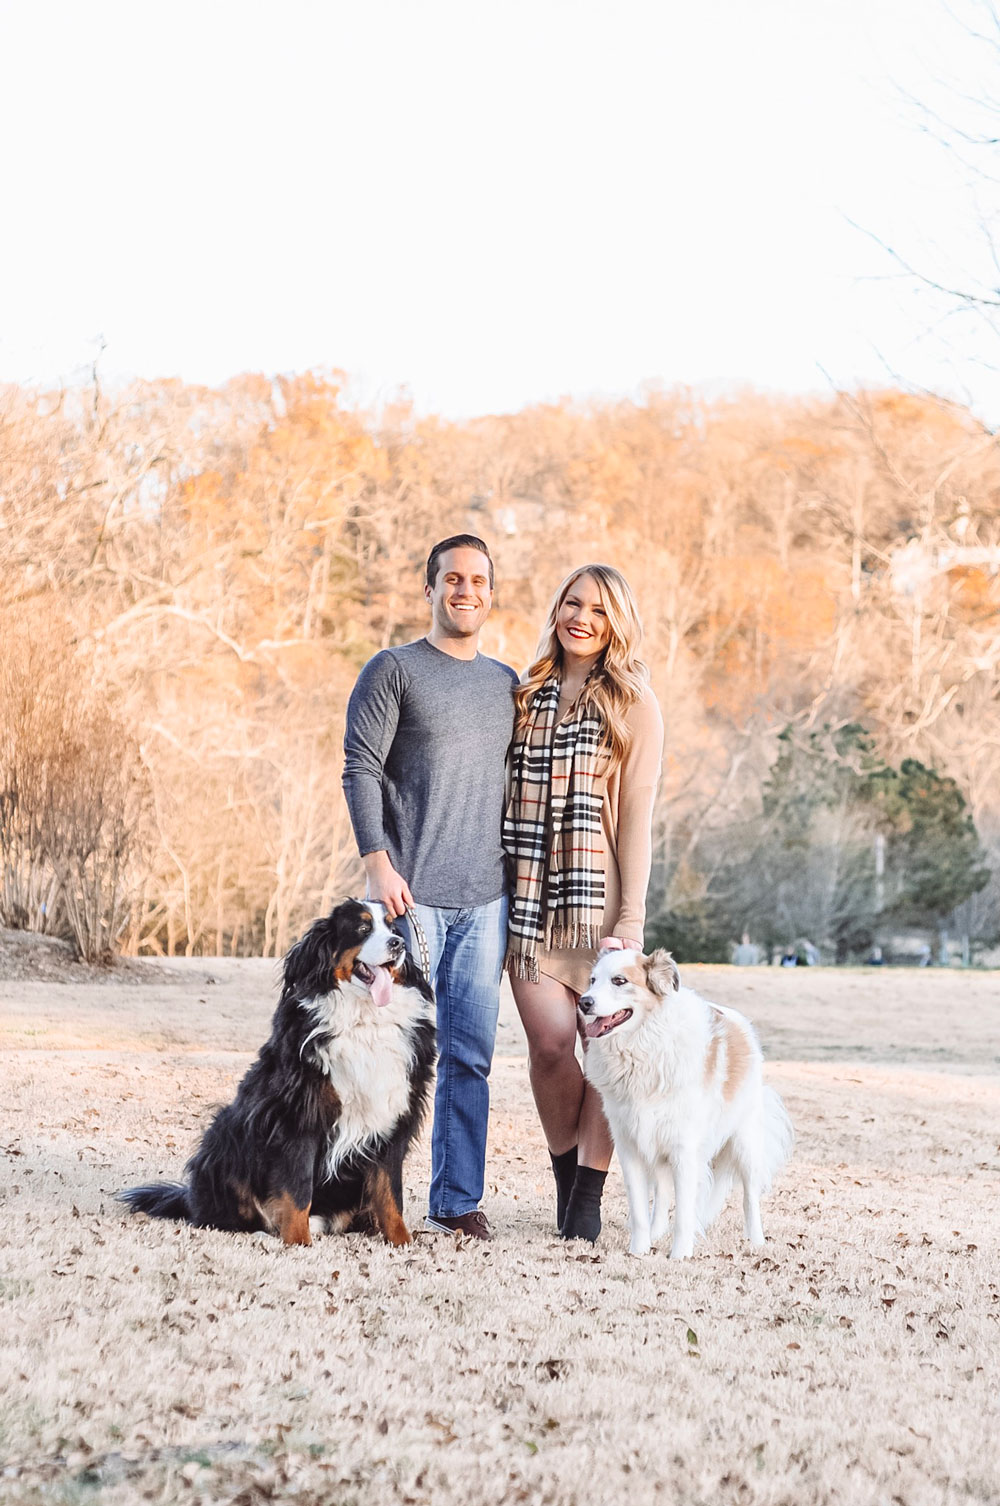 Blogger Amanda's OK shares ideas and inspiration for Christmas Card outfits